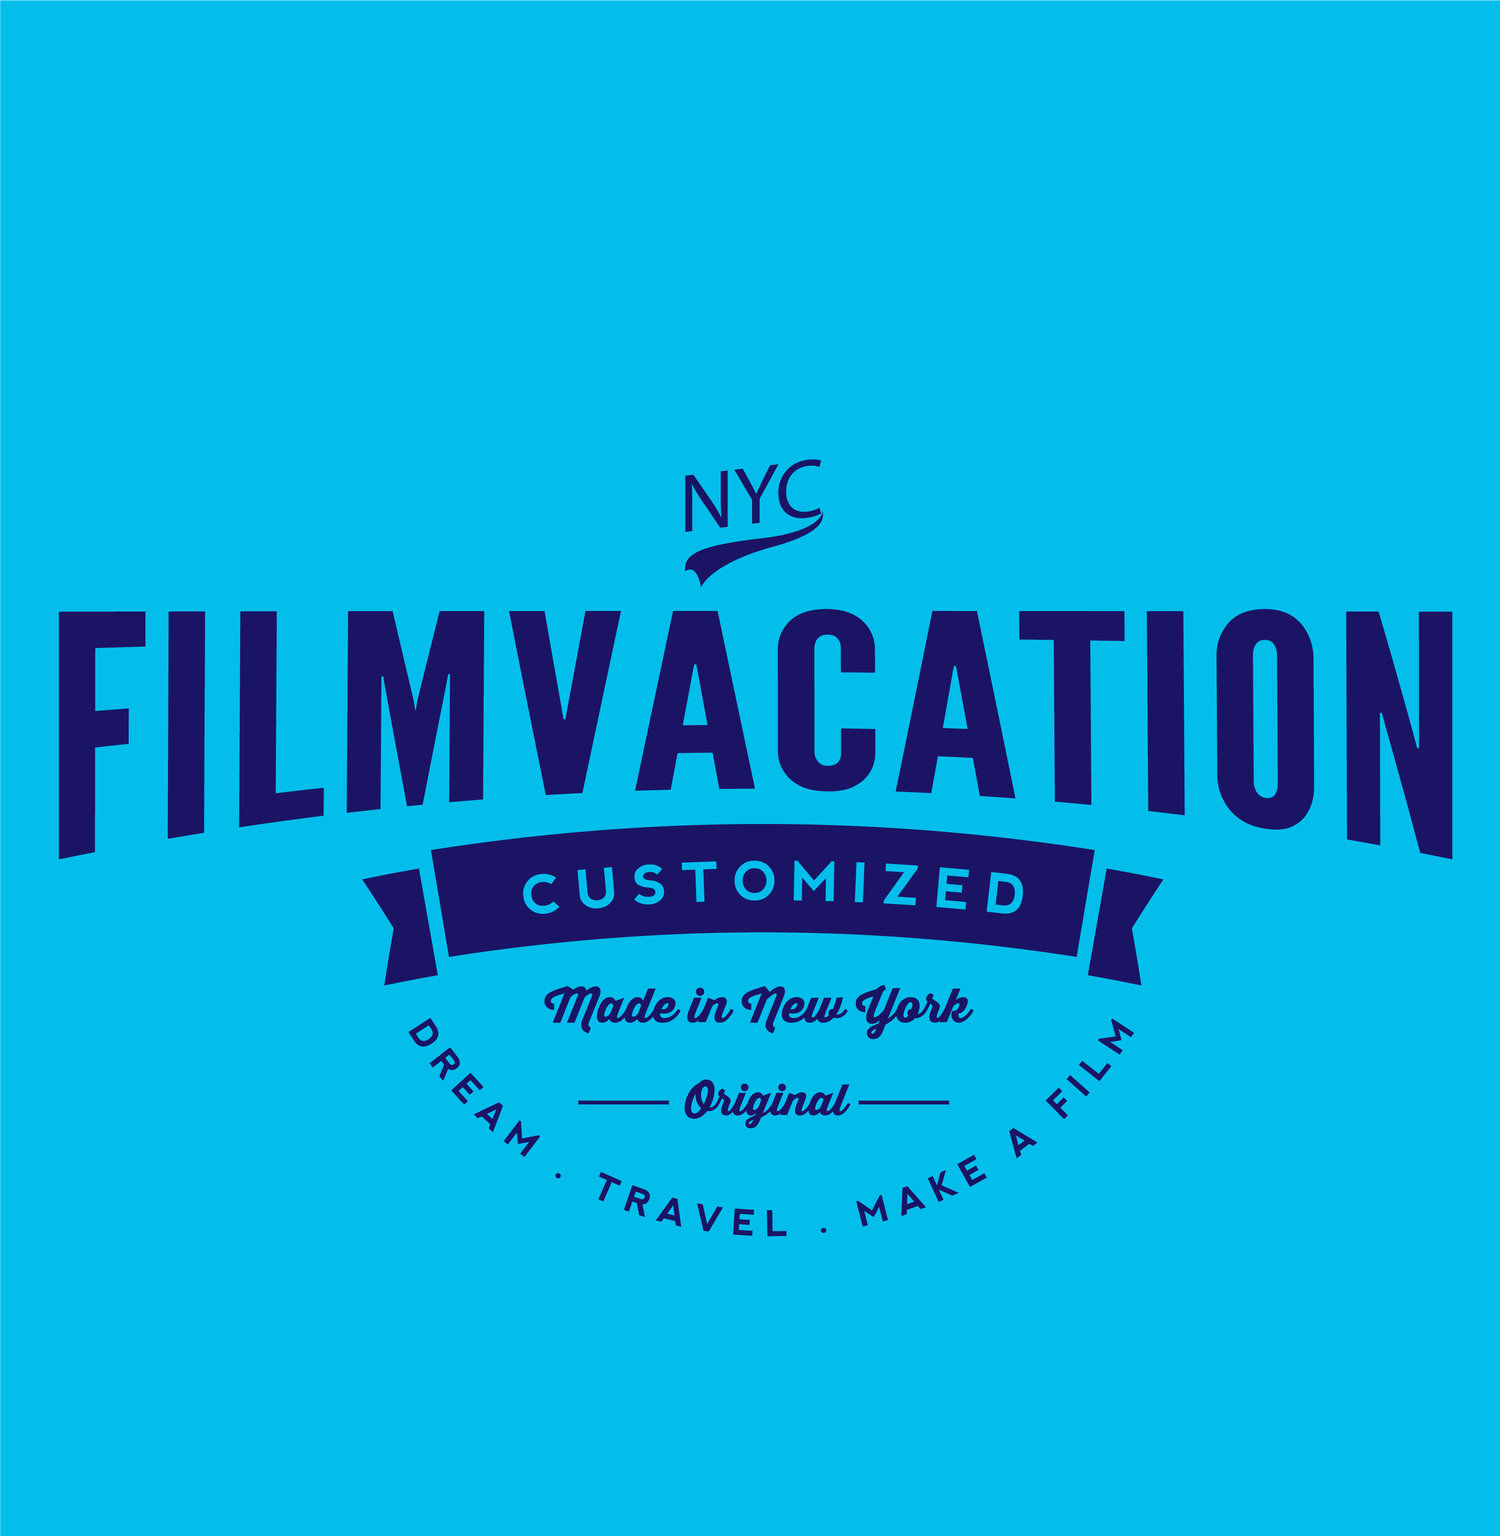 Filmvacation NYC